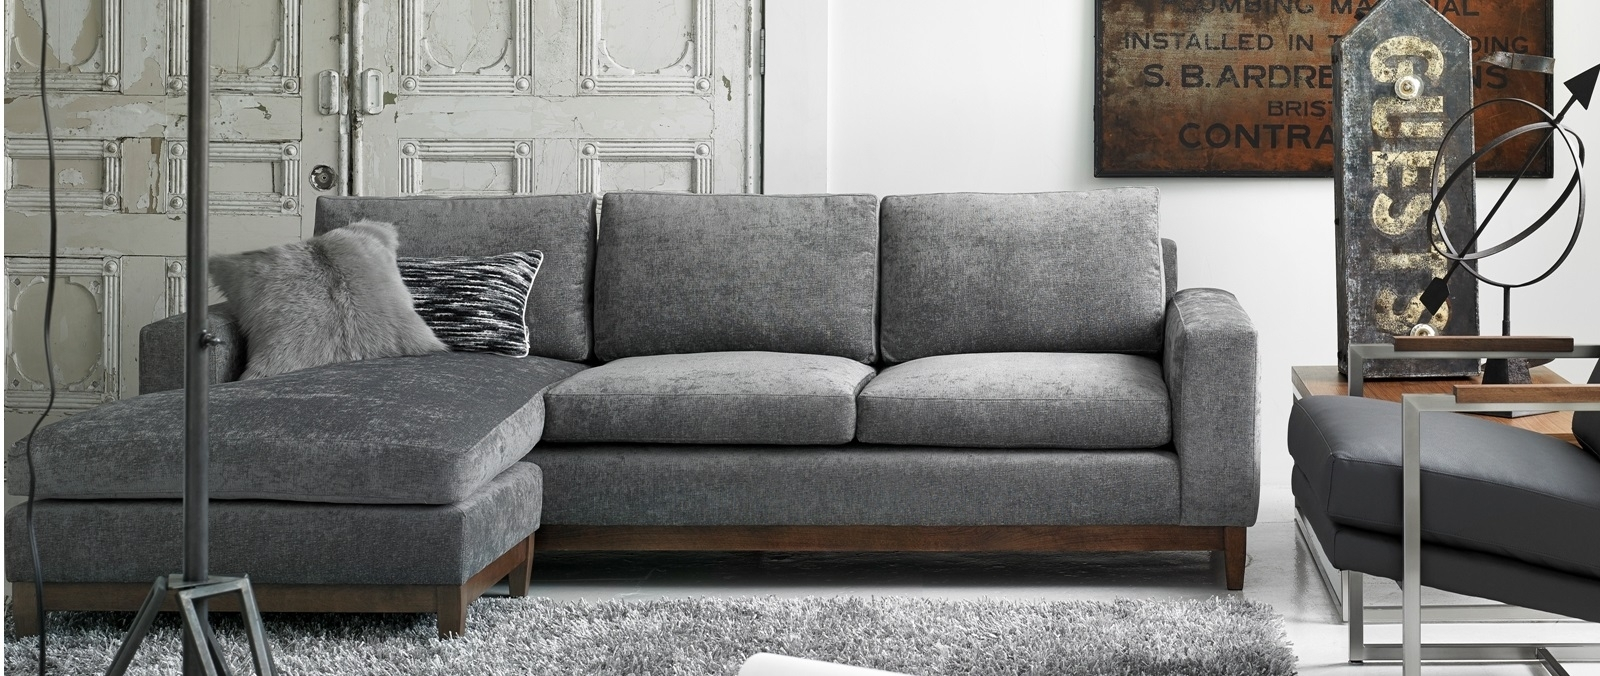 Sectional Sofa Ottawa Home The Honoroak